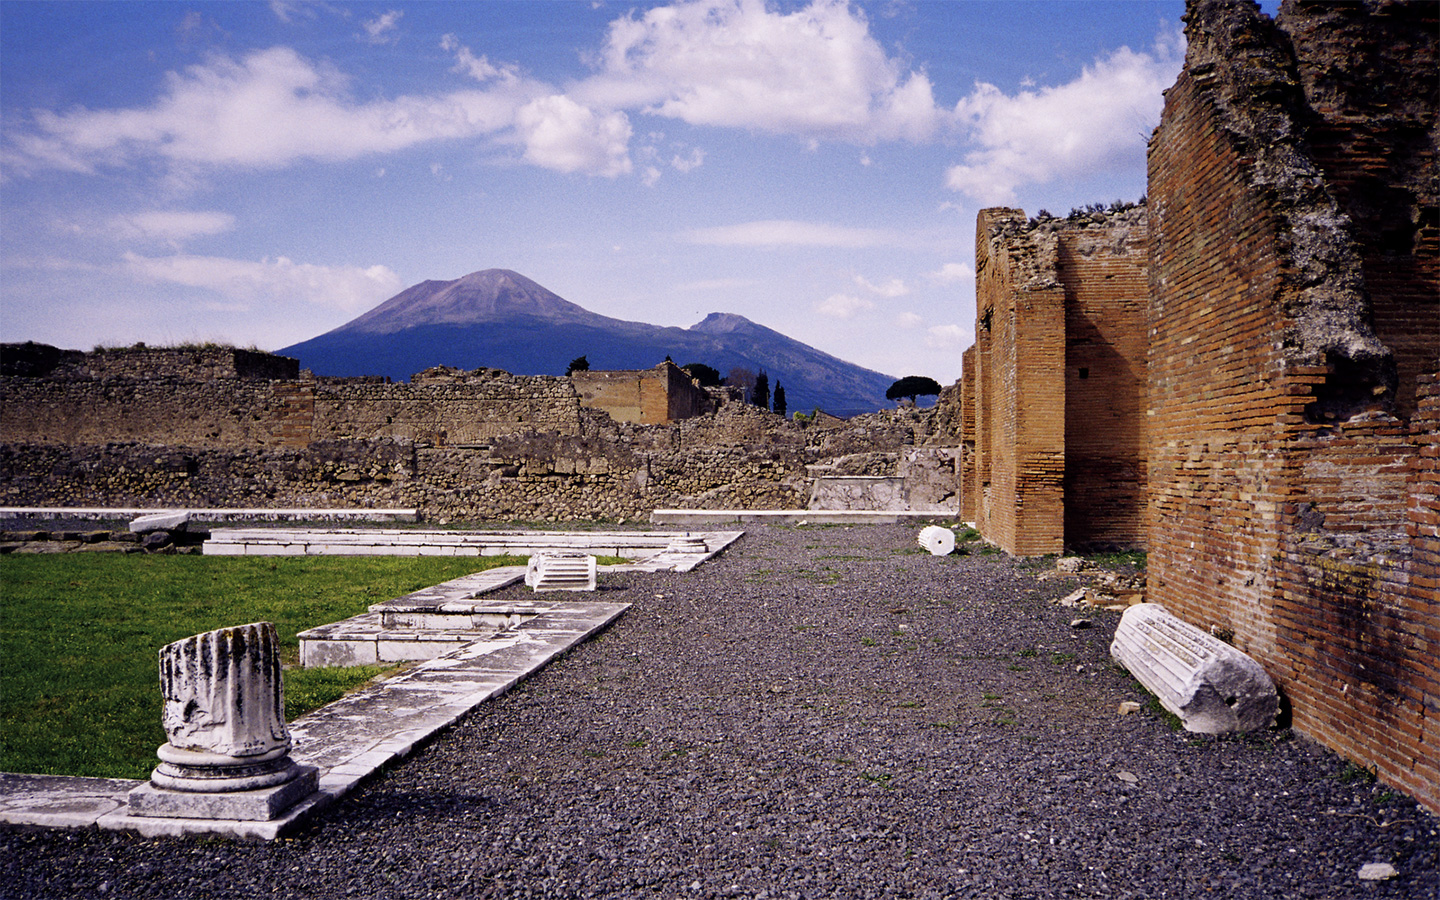 pompeii and herculaneum 'describe the Describe the leisure activities which were practiced by the citizens of pompeii and herculaneum question 10 (4 marks) describe the theatres in pompeii and herculaneum question 11 (5 marks) describe the features of baths in pompeii and herculaneum question 12 (5 marks) describe the diet of the citizens of pompeii and herculaneum.